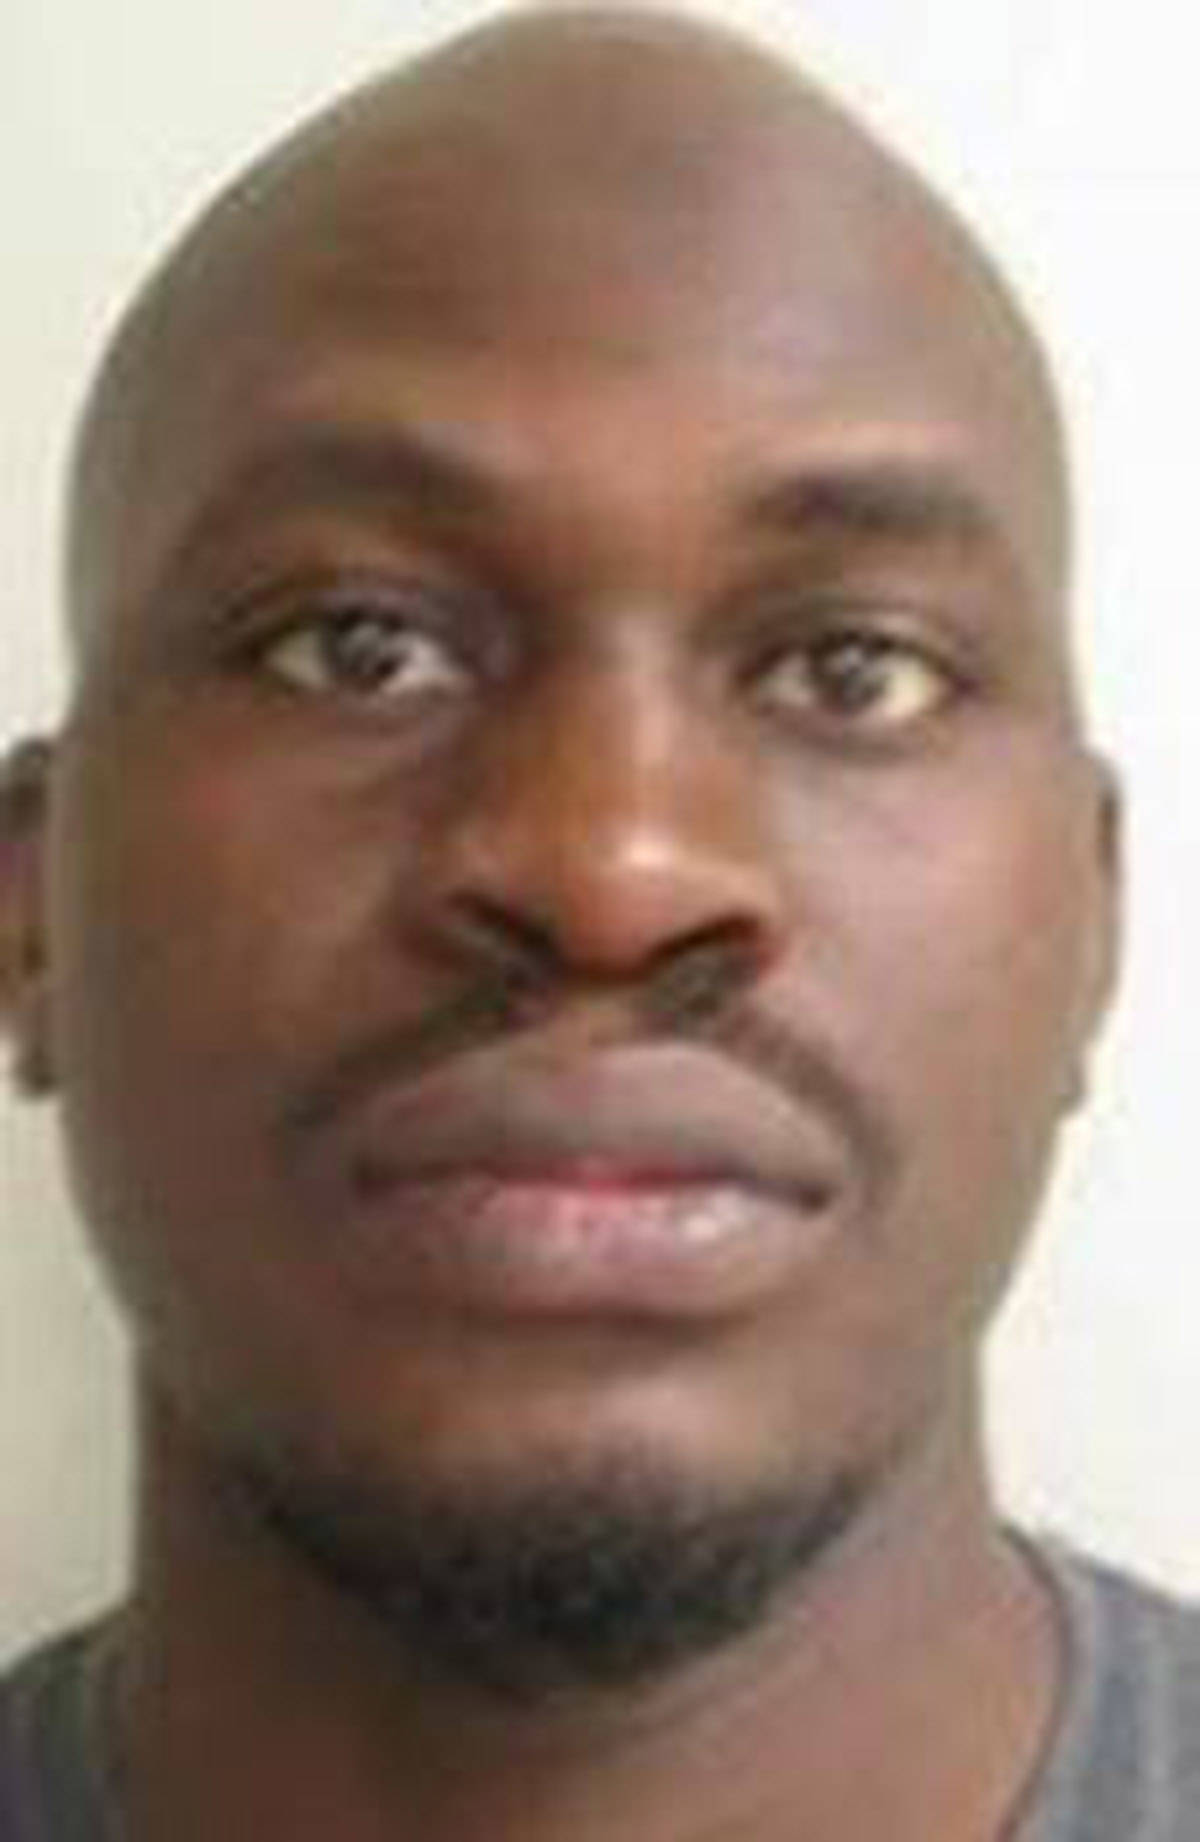 """Name: ABUBAKAR, Taiseer Age: 30 Height: 6'2"""" ft Weight: 175 lbs Hair: Bald Eyes: Brown Wanted: Armed Robbery Warrant in effect: February 04, 2021 Parole Jurisdiction: New Westminster, B.C."""